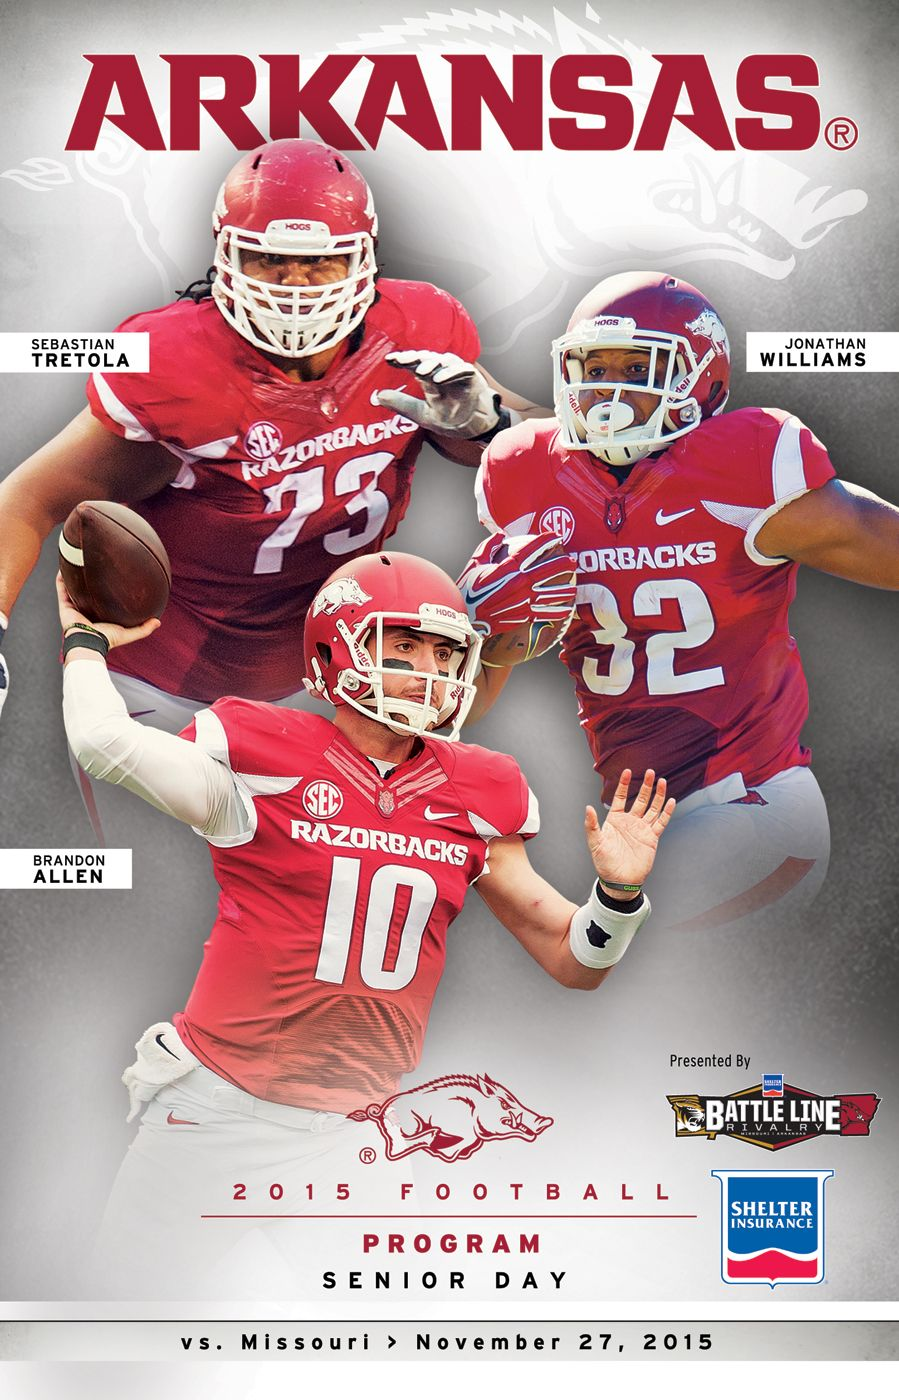 The 2015 Arkansas Razorback Football Program Vs Mississippi State On November 21 Cover Features Mitch Smothers Denver Kirkland An Arkansas Razorbacks Football